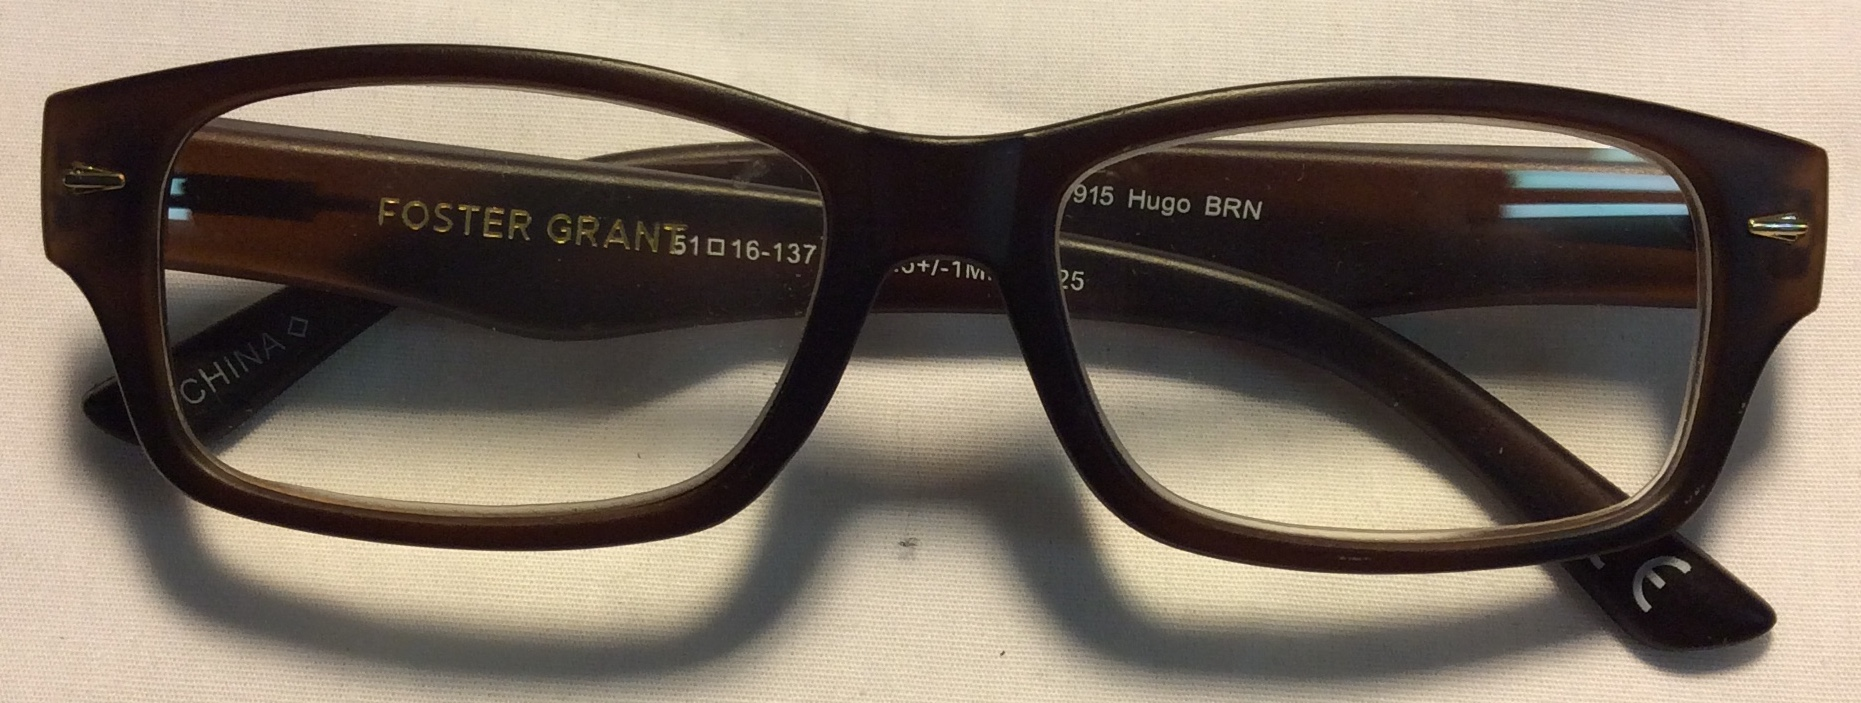 Foster Grant Dark brown plastic